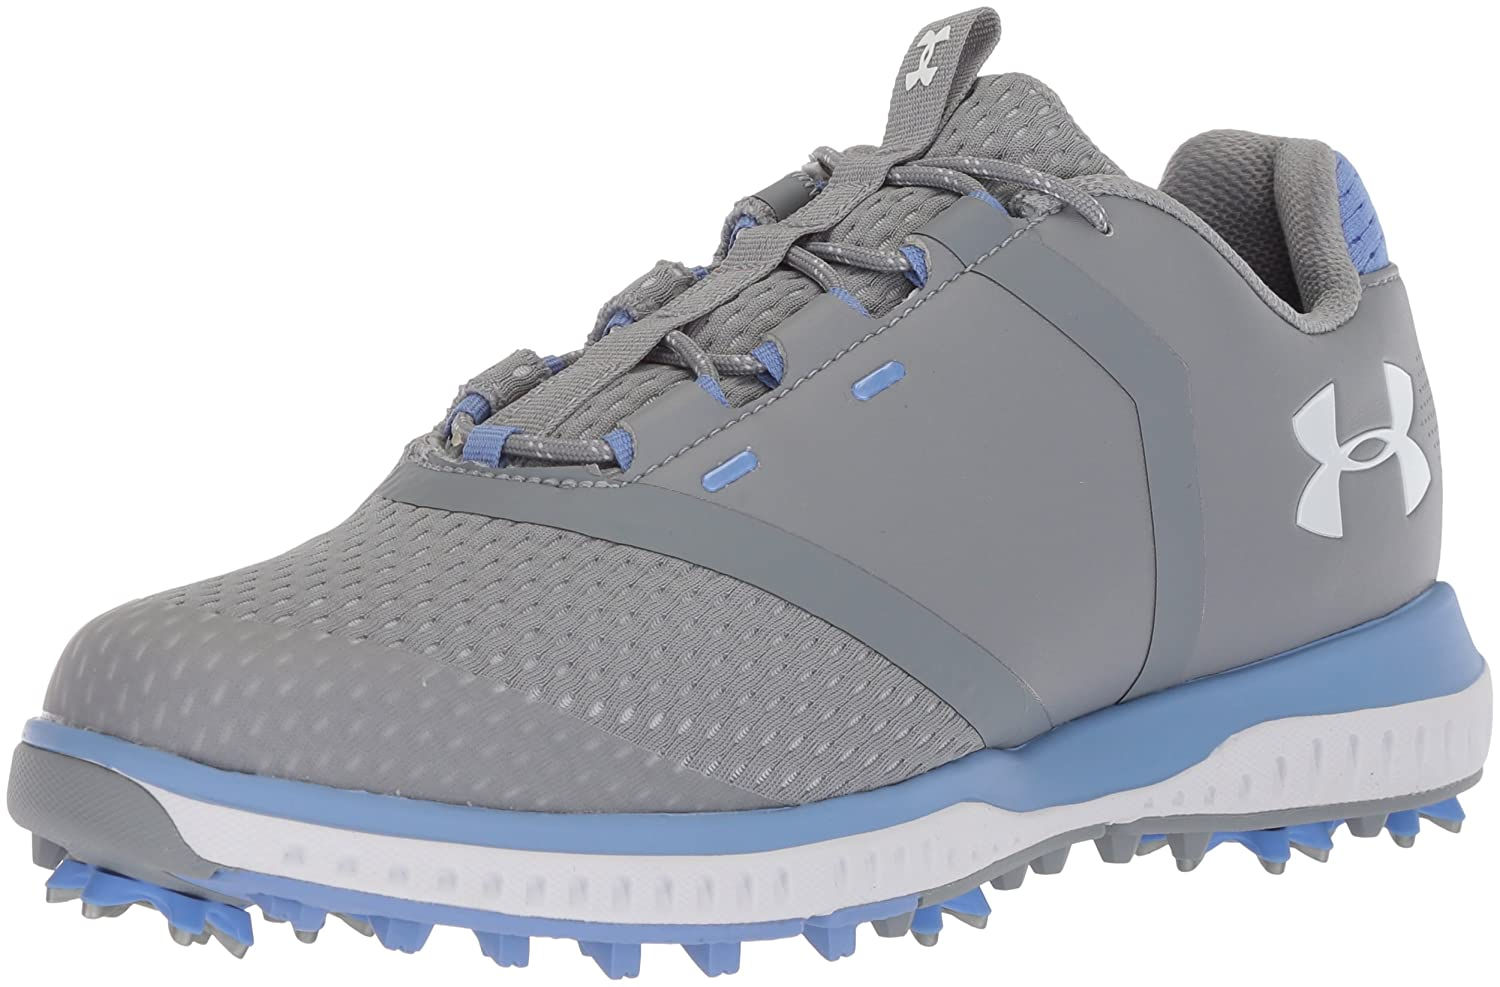 Under Armour Women's Fade RST Golf Shoe B071S8FGM5 6.5 M US|Steel (101)/Talc Blue